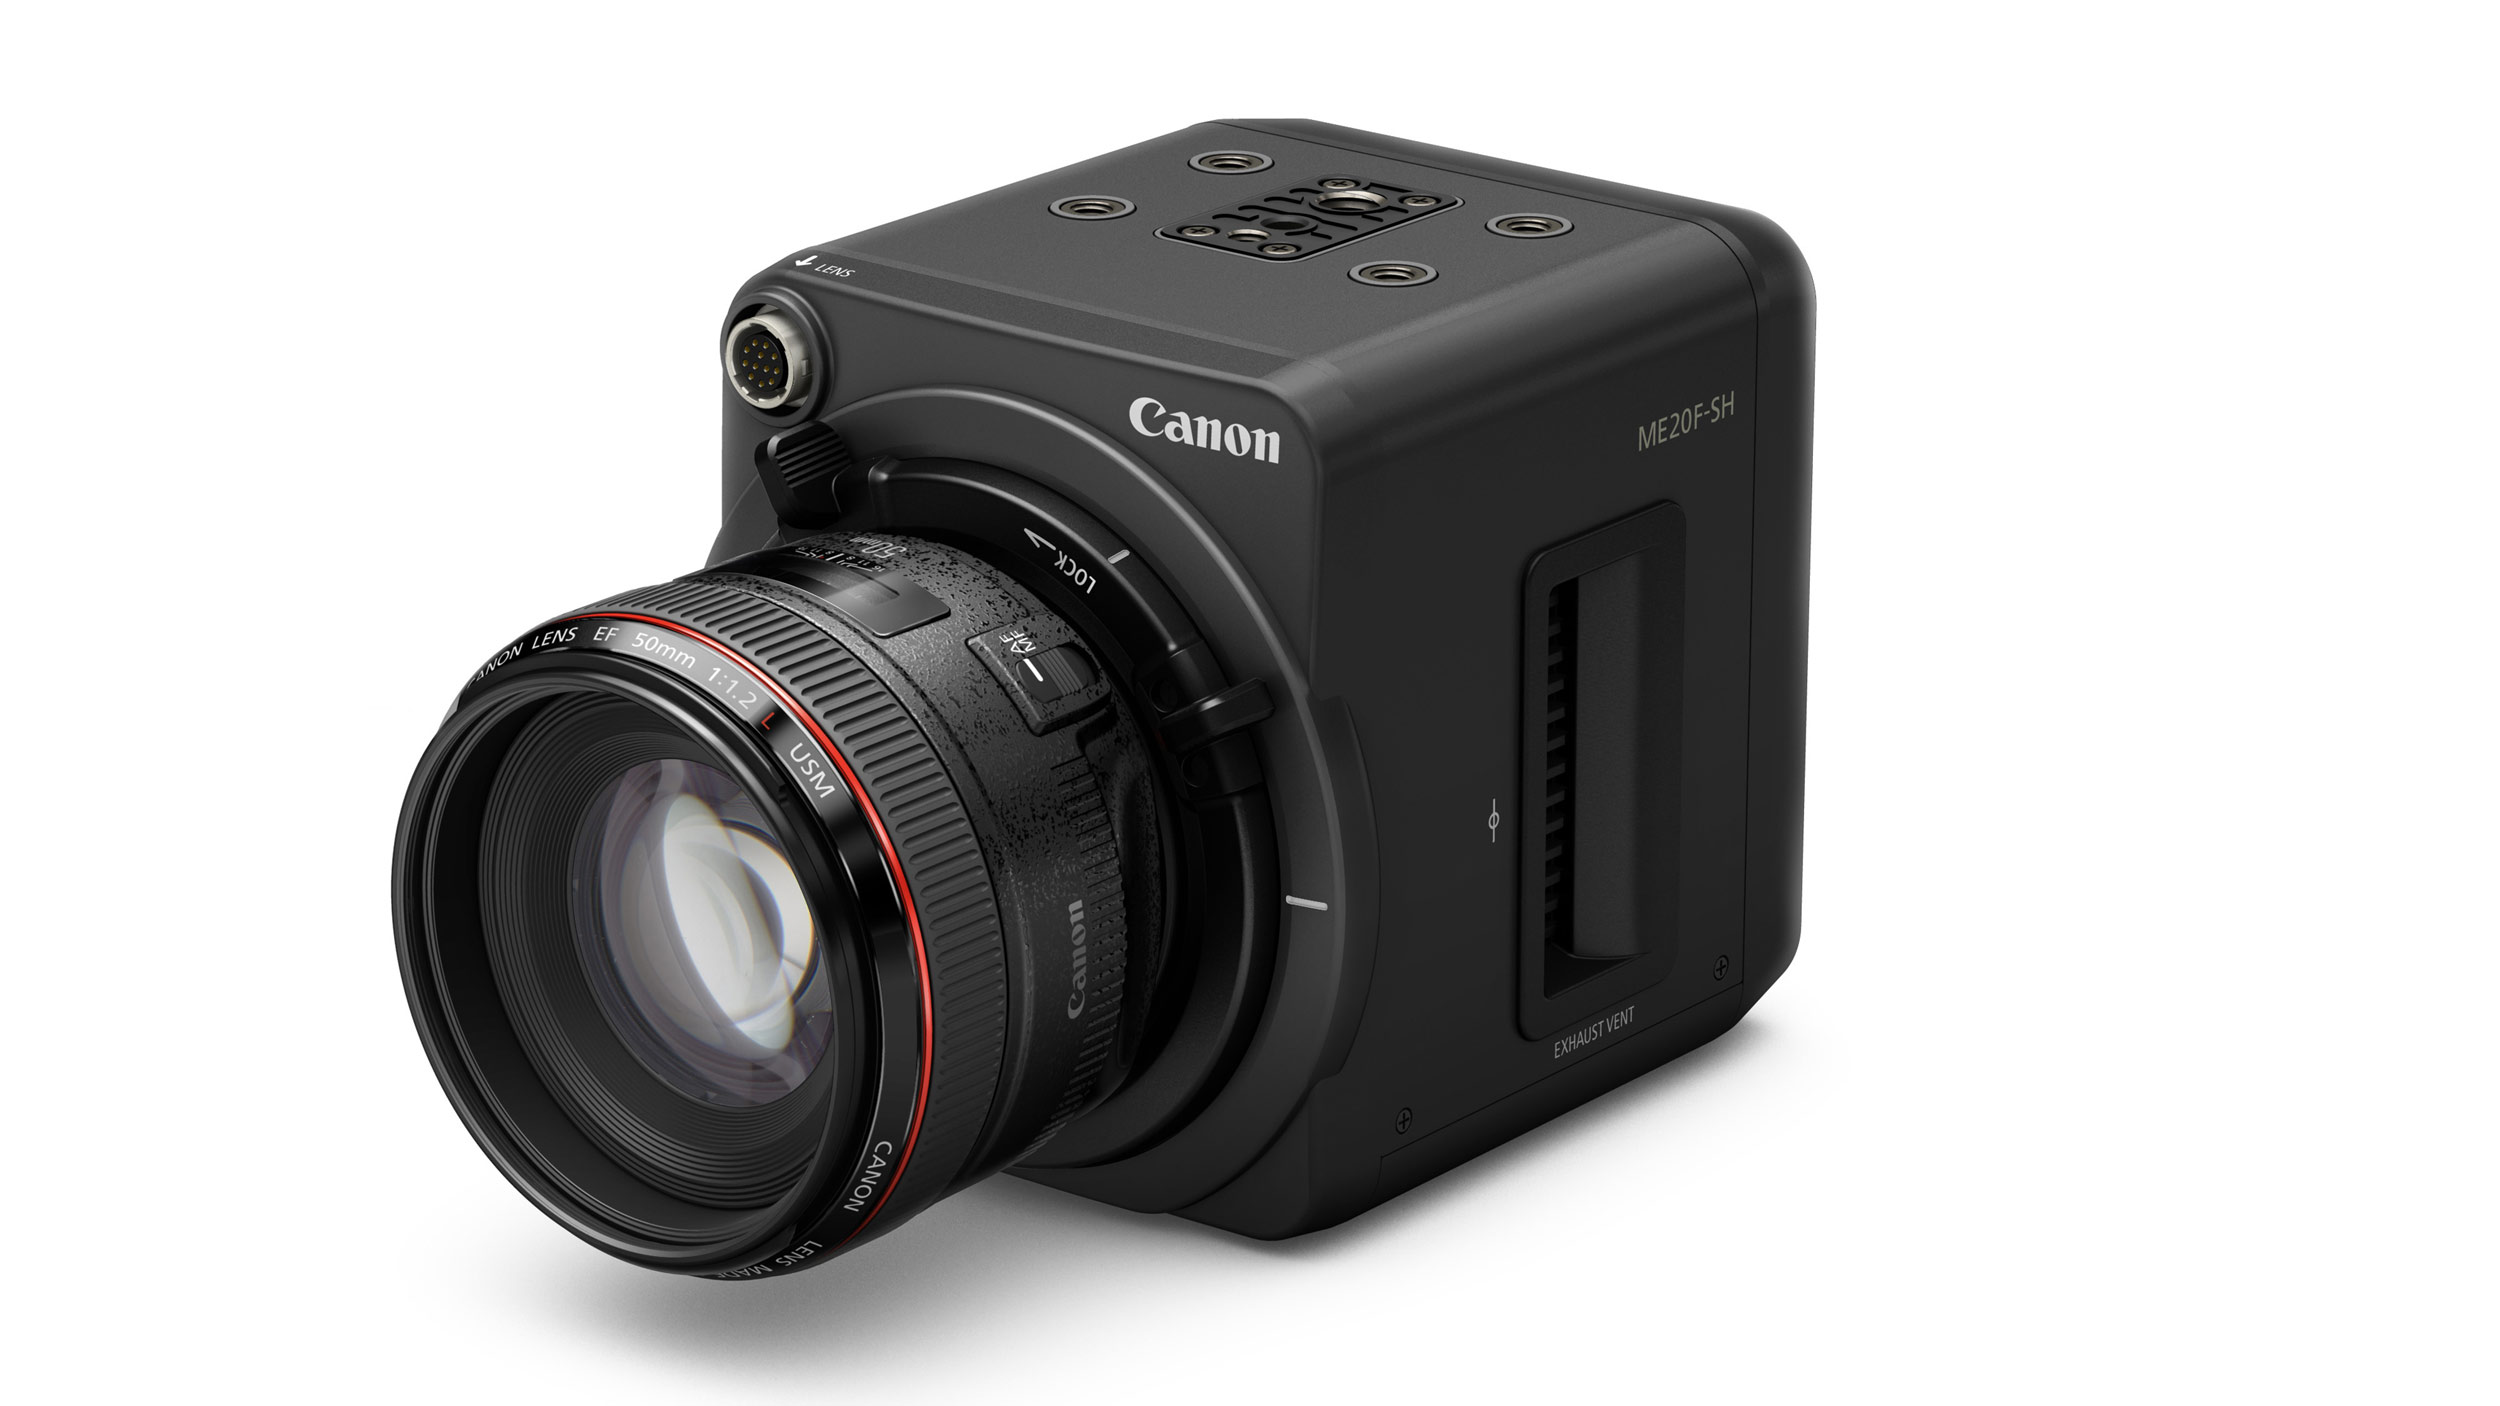 the new canon me20f sh a lowlight camera with 4 million iso